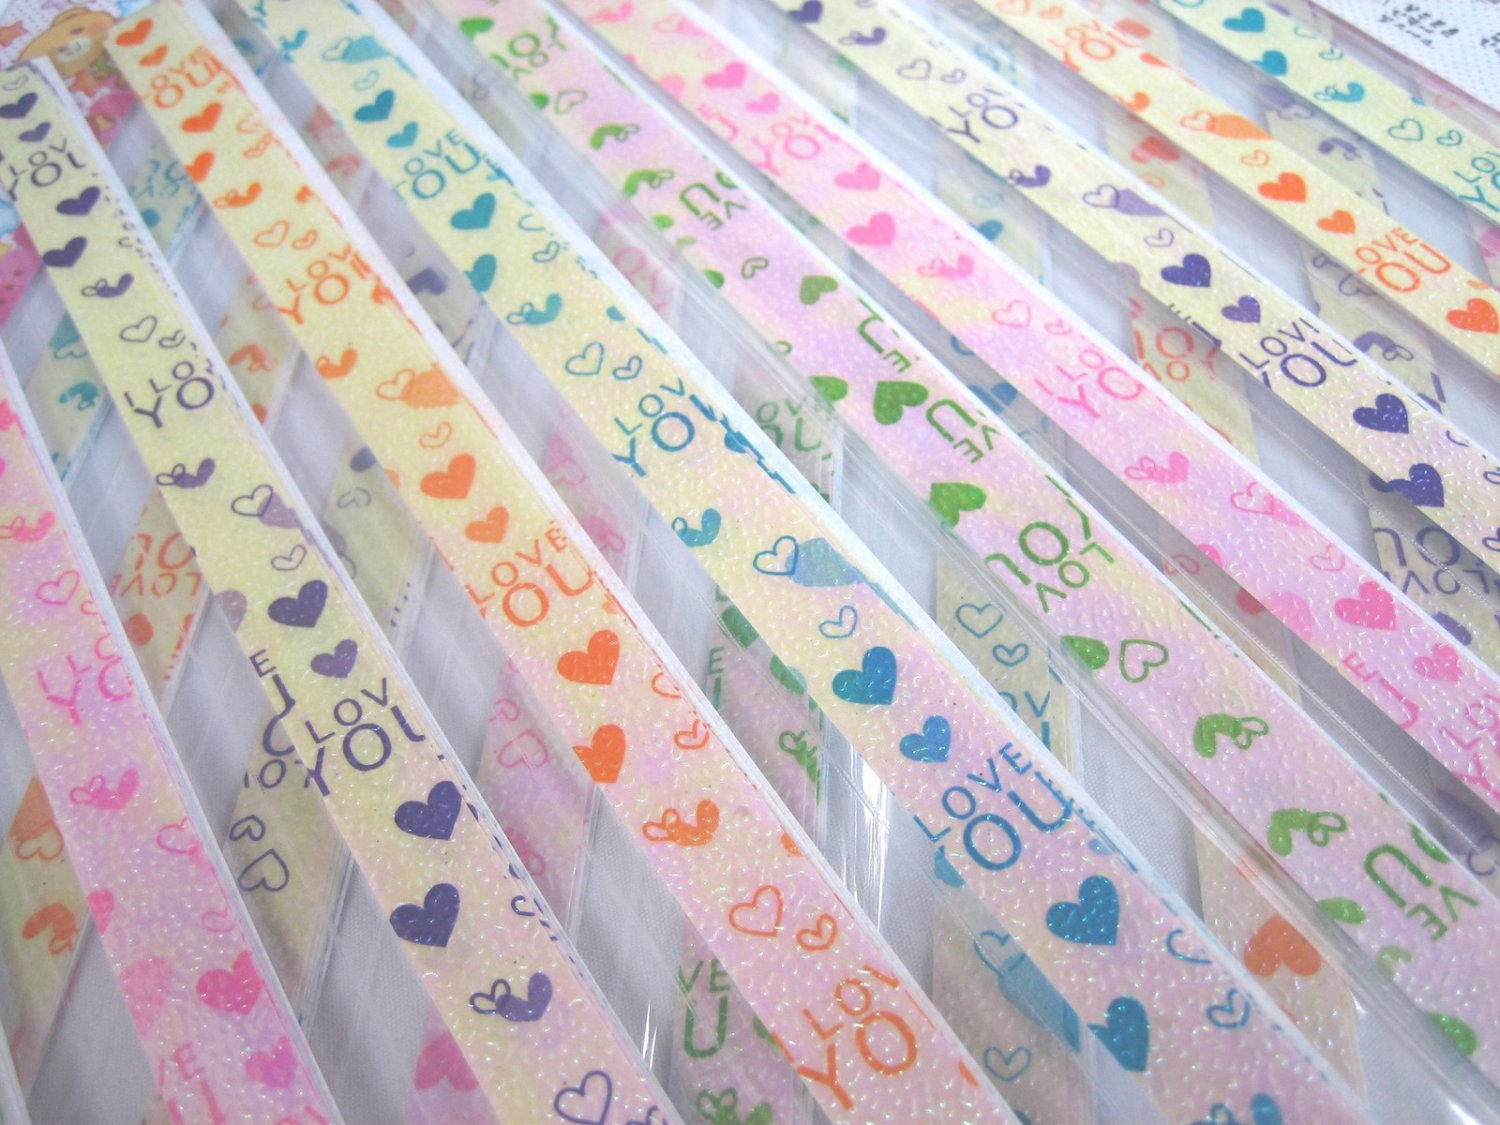 80 strips I LOVE YOU WITH FULL HEART Mix Colour Origami Folding Lucky Star Paper Strips 80A